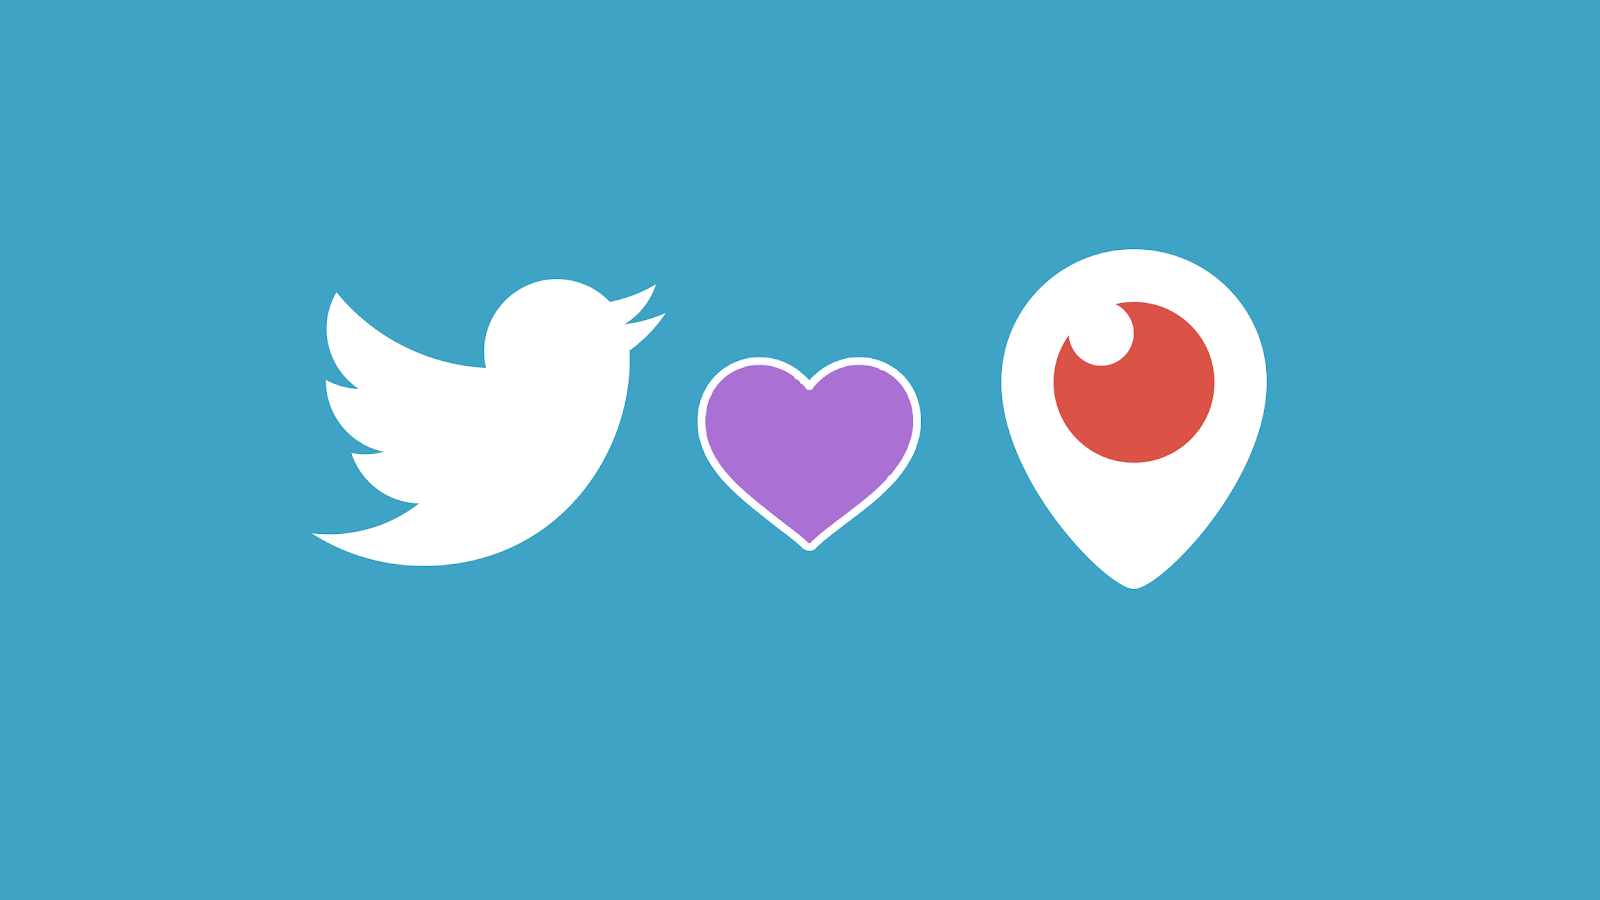 An illustration showing logos of Twitter and Periscope set against a light blue background